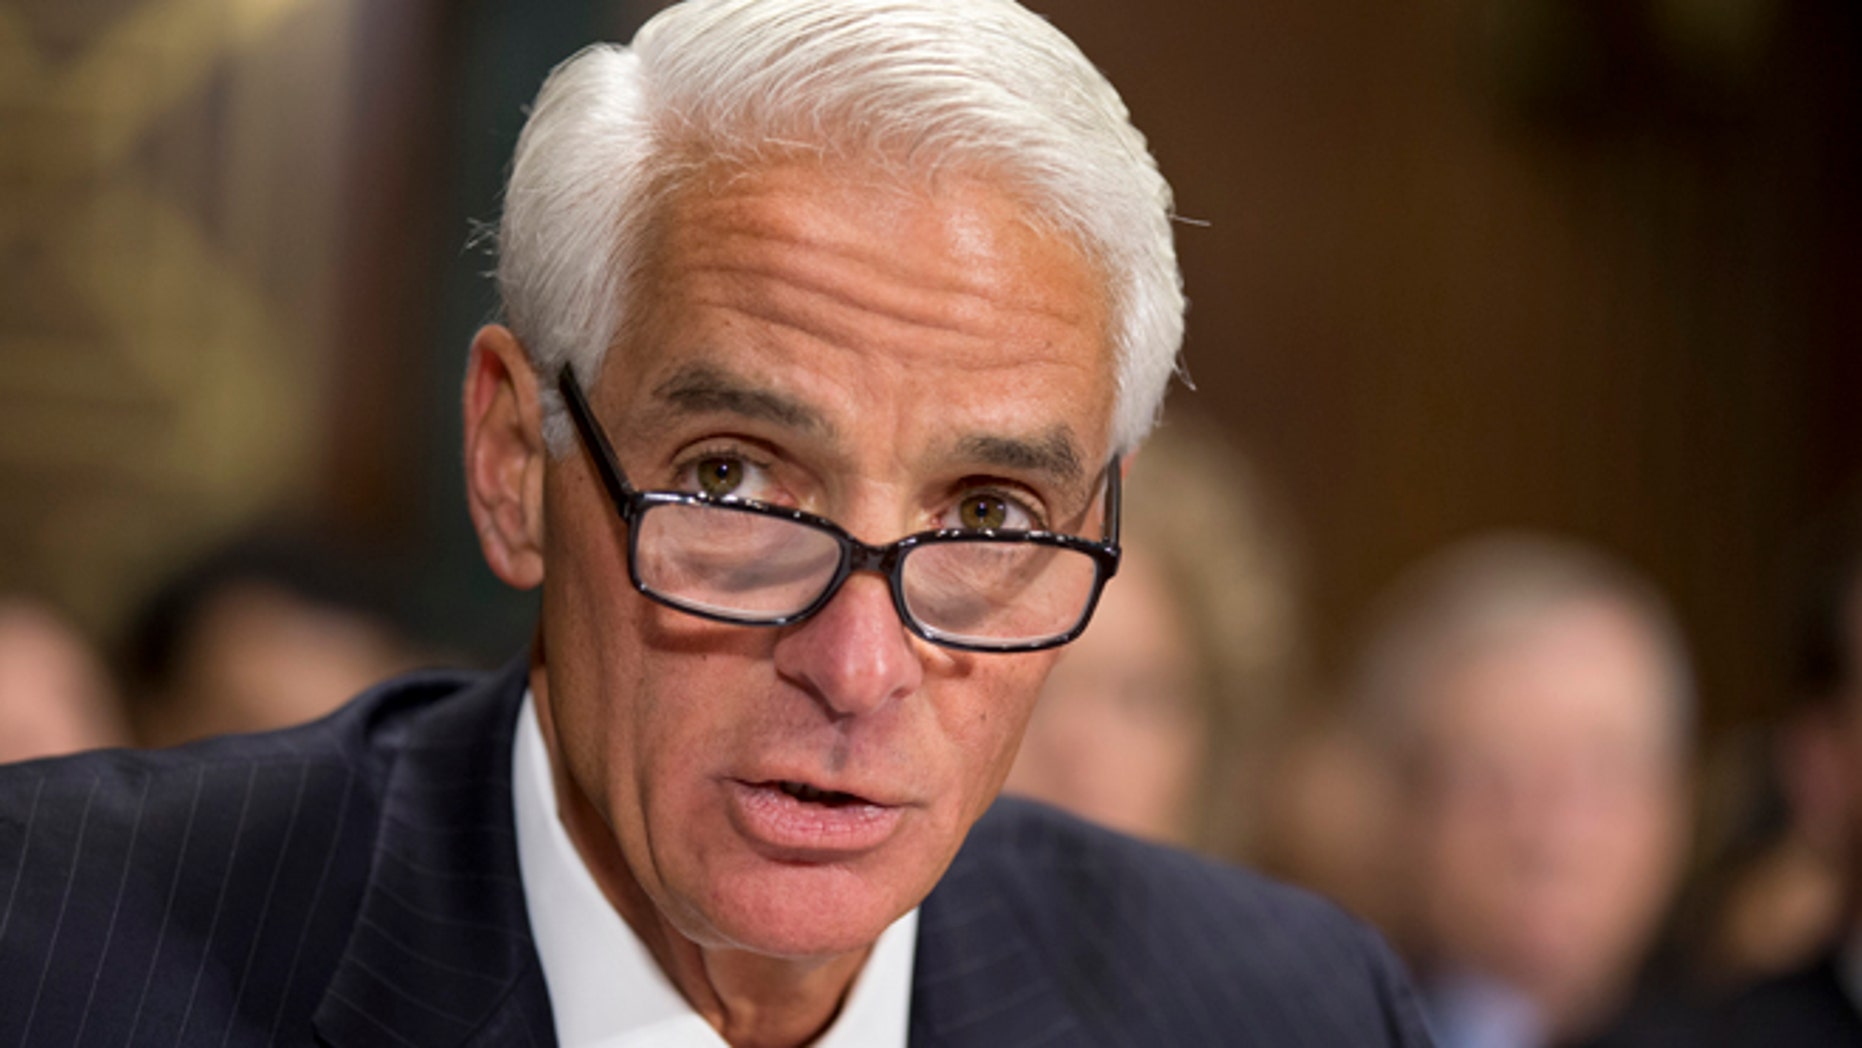 Dec. 19, 2012: Former Florida Gov. Charlie Crist delivers a statement before the Senate Judiciary Committee on Capitol Hill in Washington.